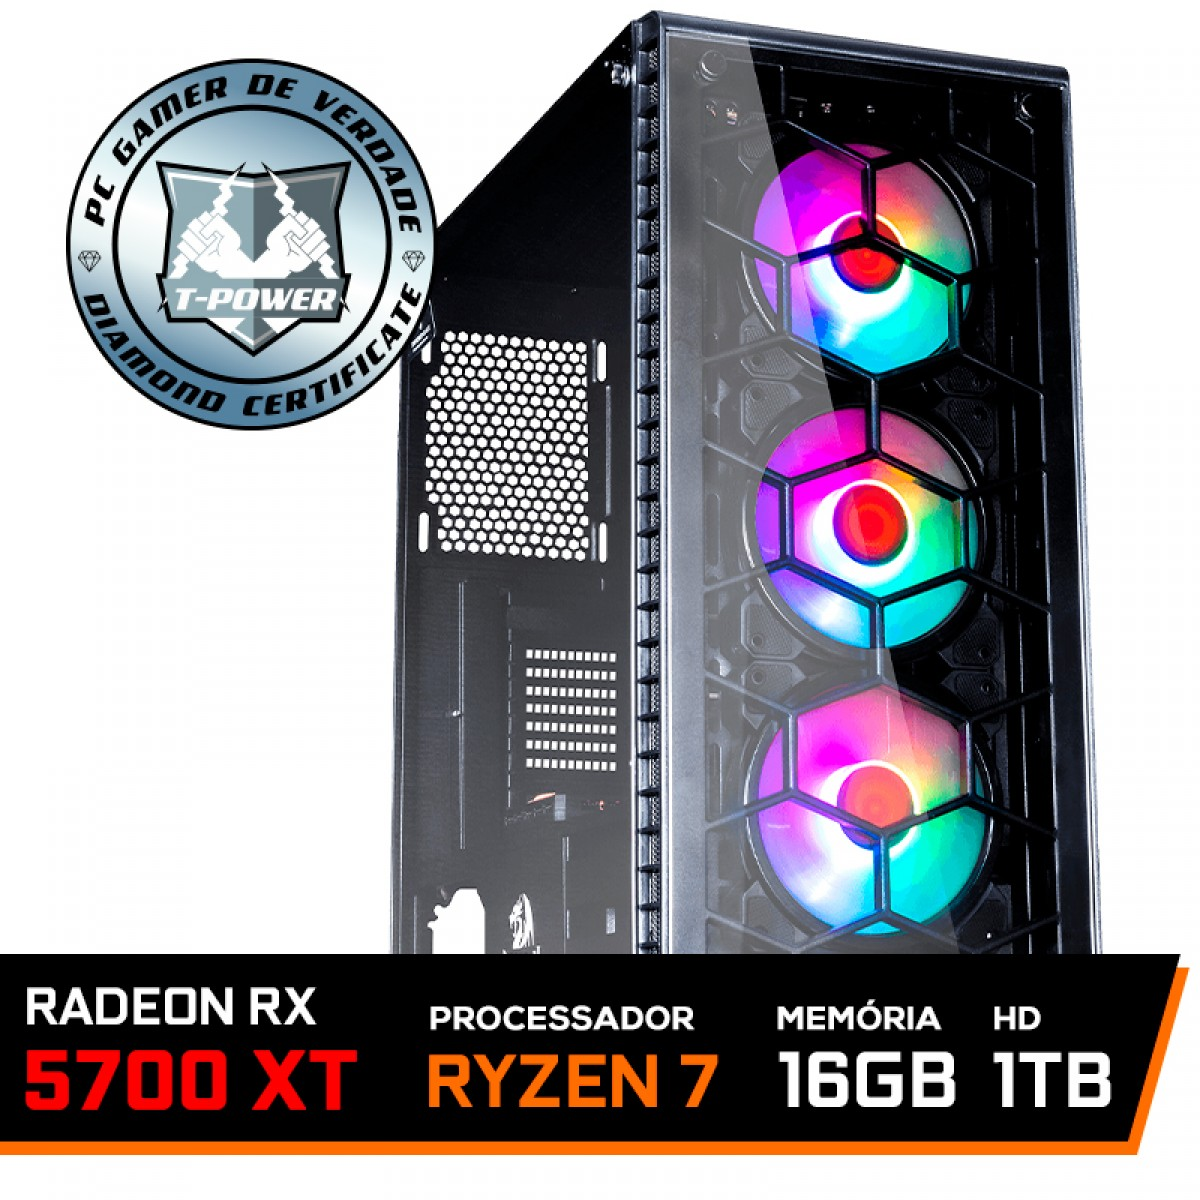 Pc Gamer T-Power Destroyer Lvl-3 AMD Ryzen 7 3800X / Radeon RX 5700 XT 8GB / DDR4 16GB / HD 1TB / 600W